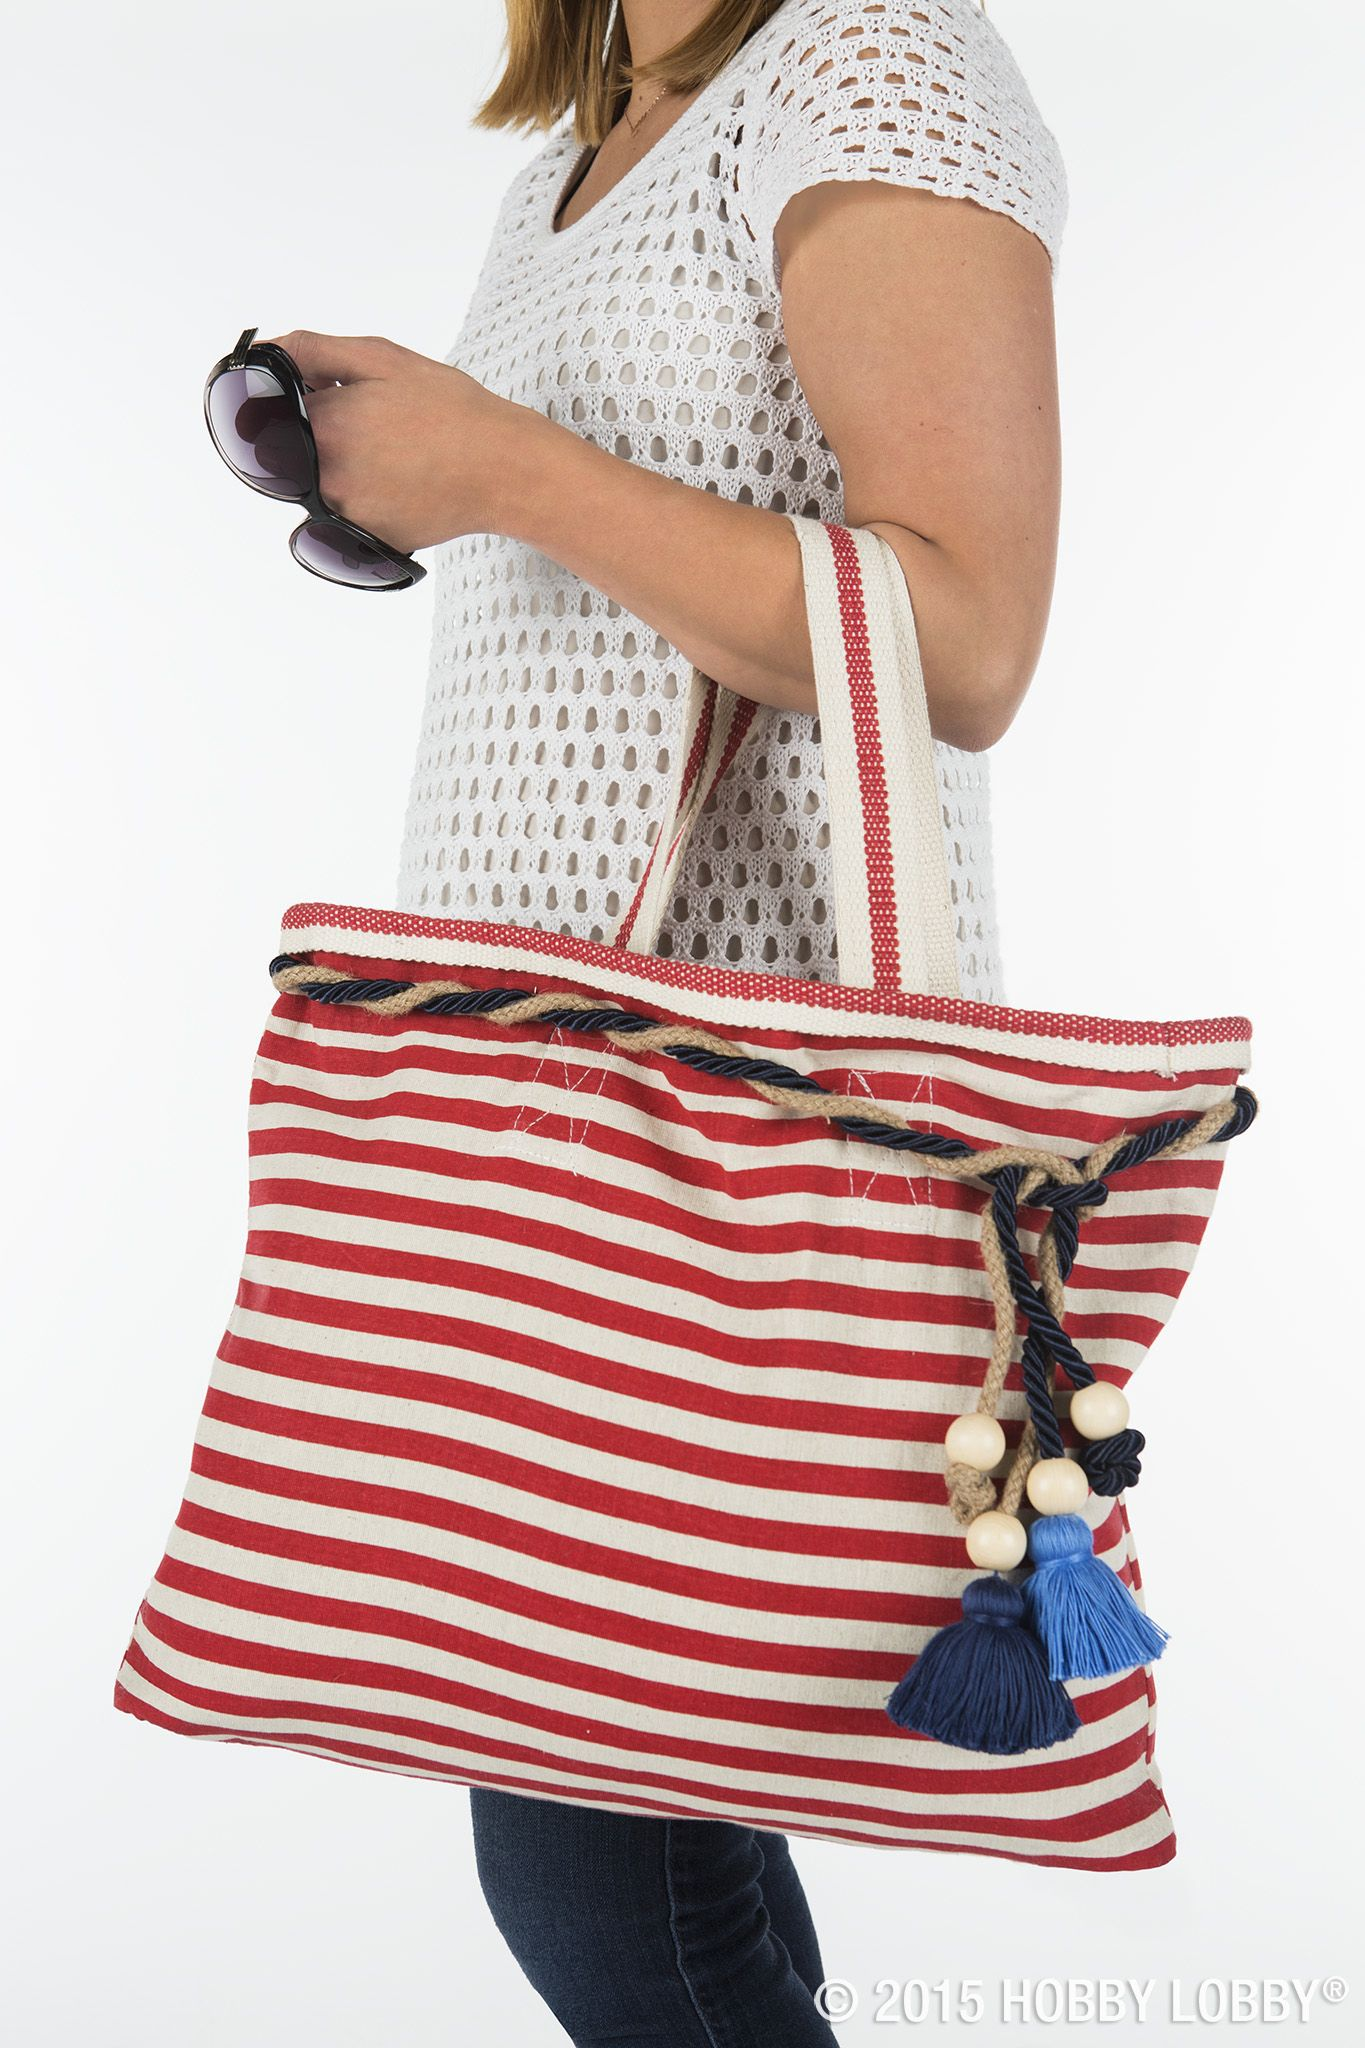 We embellished a simple striped bag to transform an ordinary piece into the perfect summer accessory.